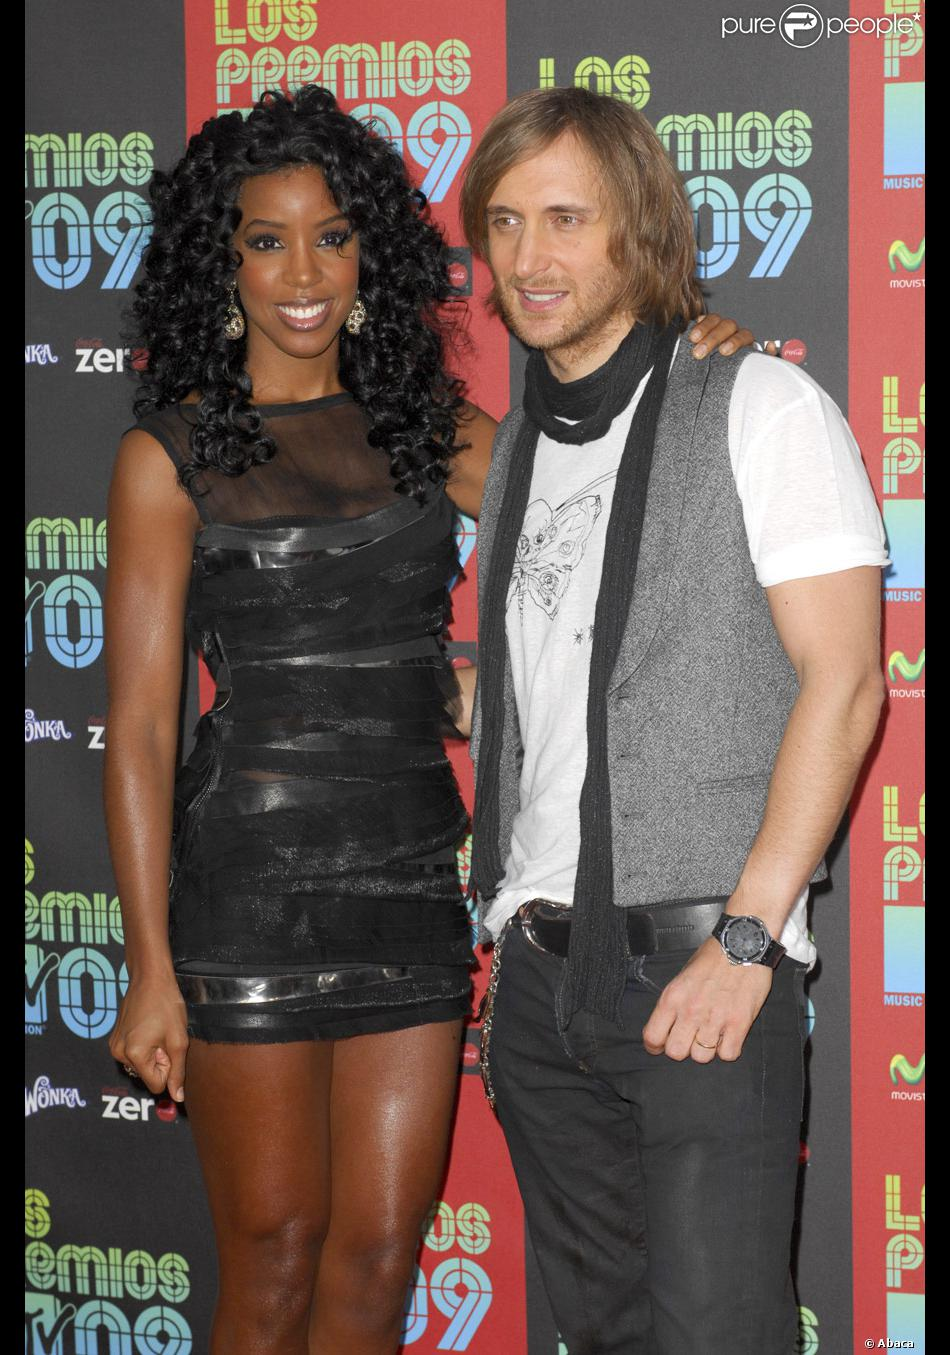 ¿Cuánto mide David Guetta? - Altura - Real height 300252-david-guetta-et-kelly-rowland-a-950x0-3